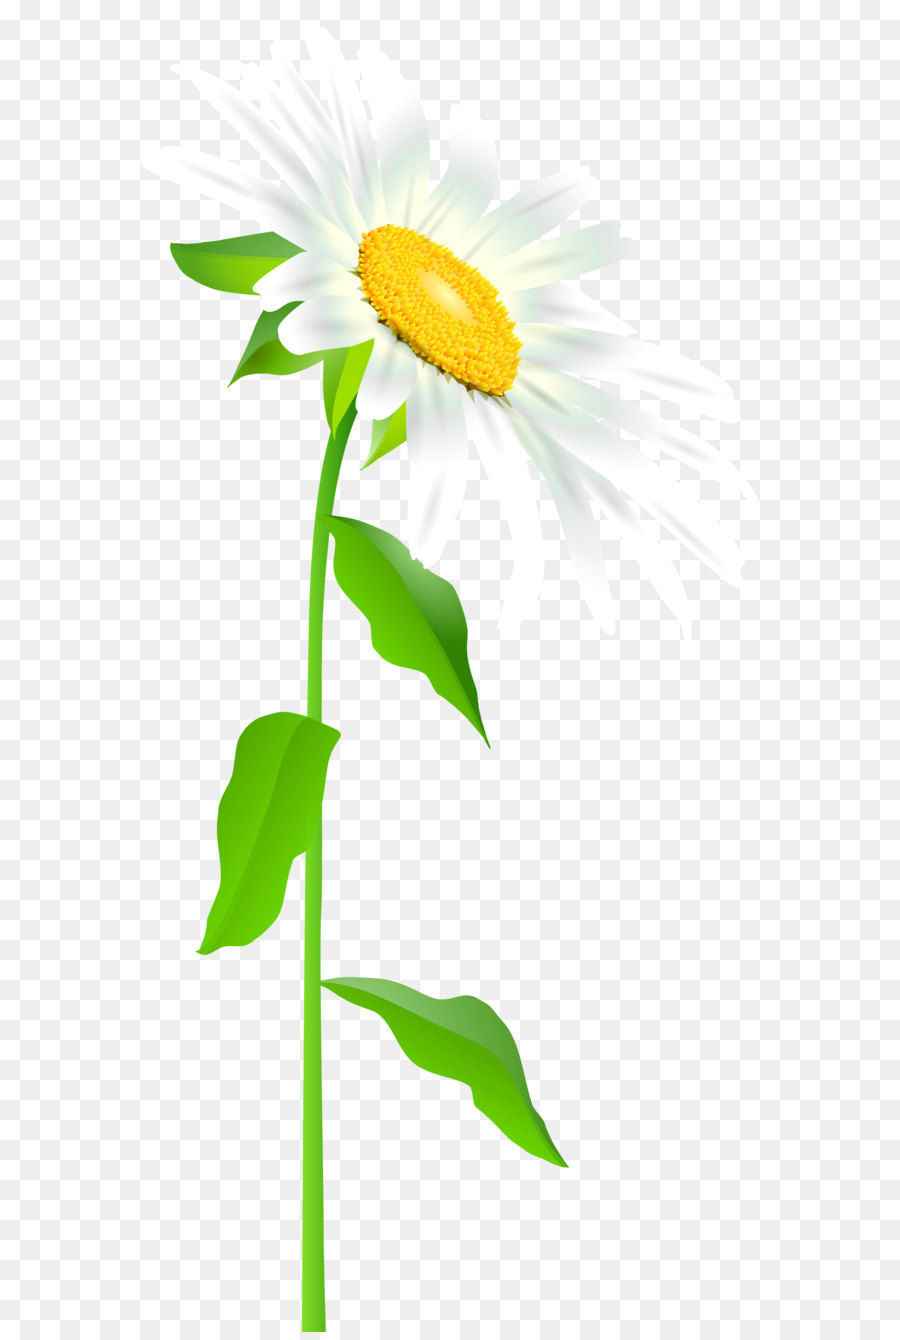 medium resolution of common sunflower text leaf illustration daisy with stem transparent png clip art image png download 3416 7000 free transparent easter bunny png